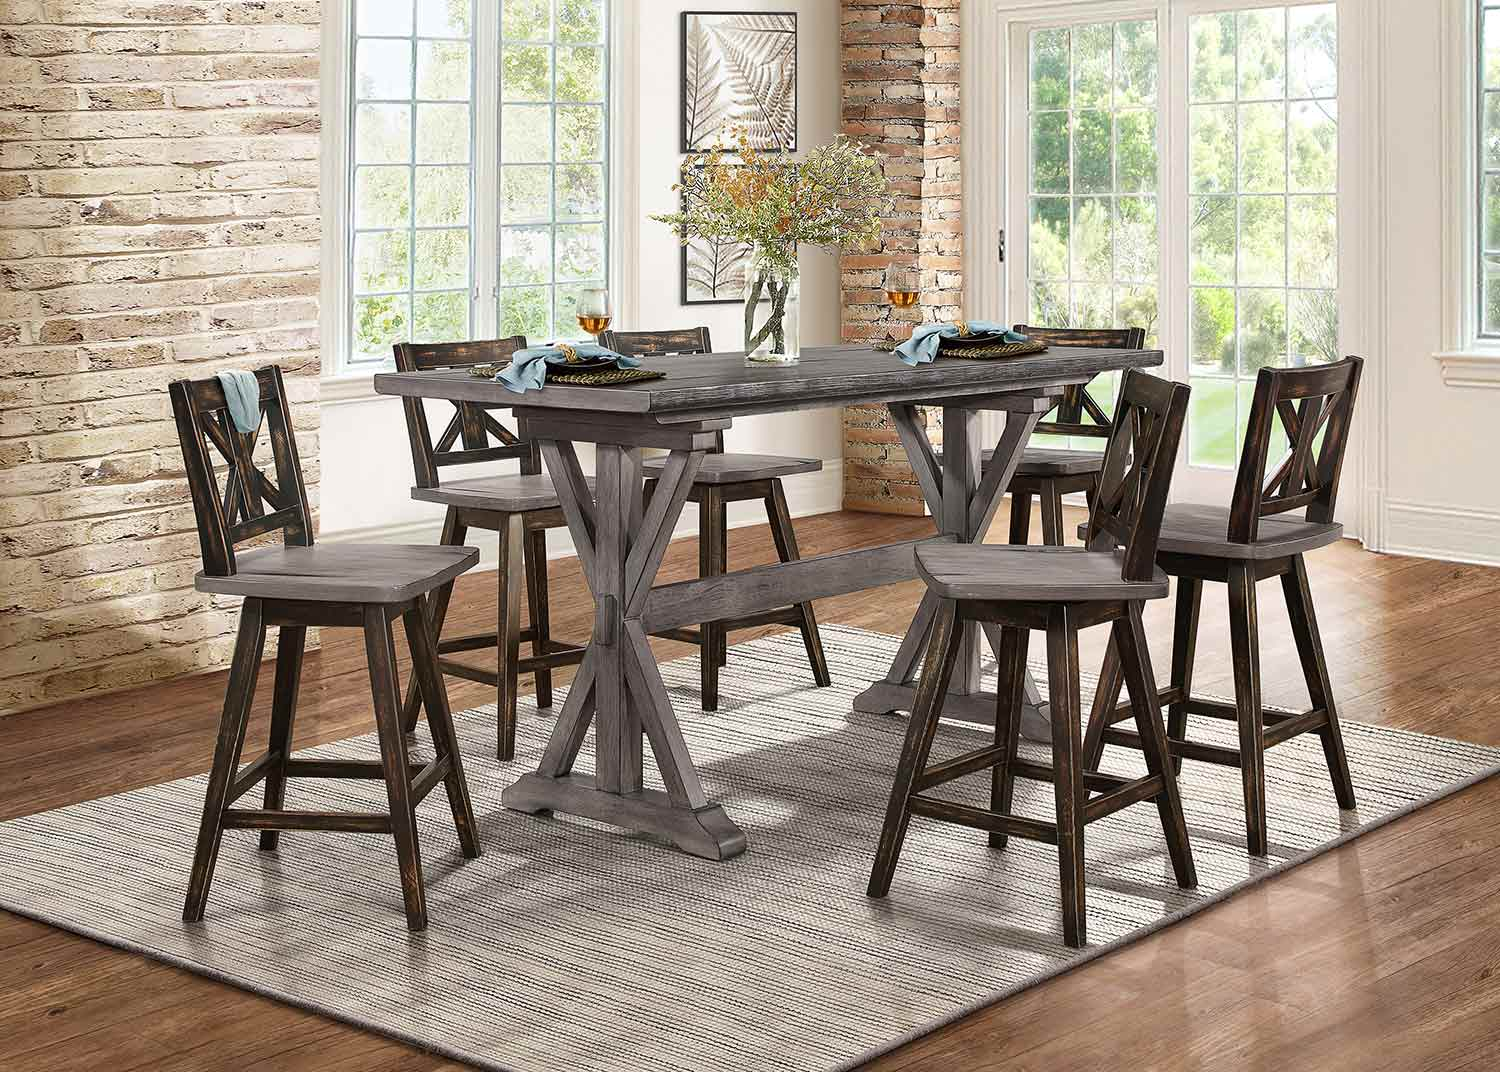 Homelegance Amsonia Counter Height Dining Set - Rustic Gray